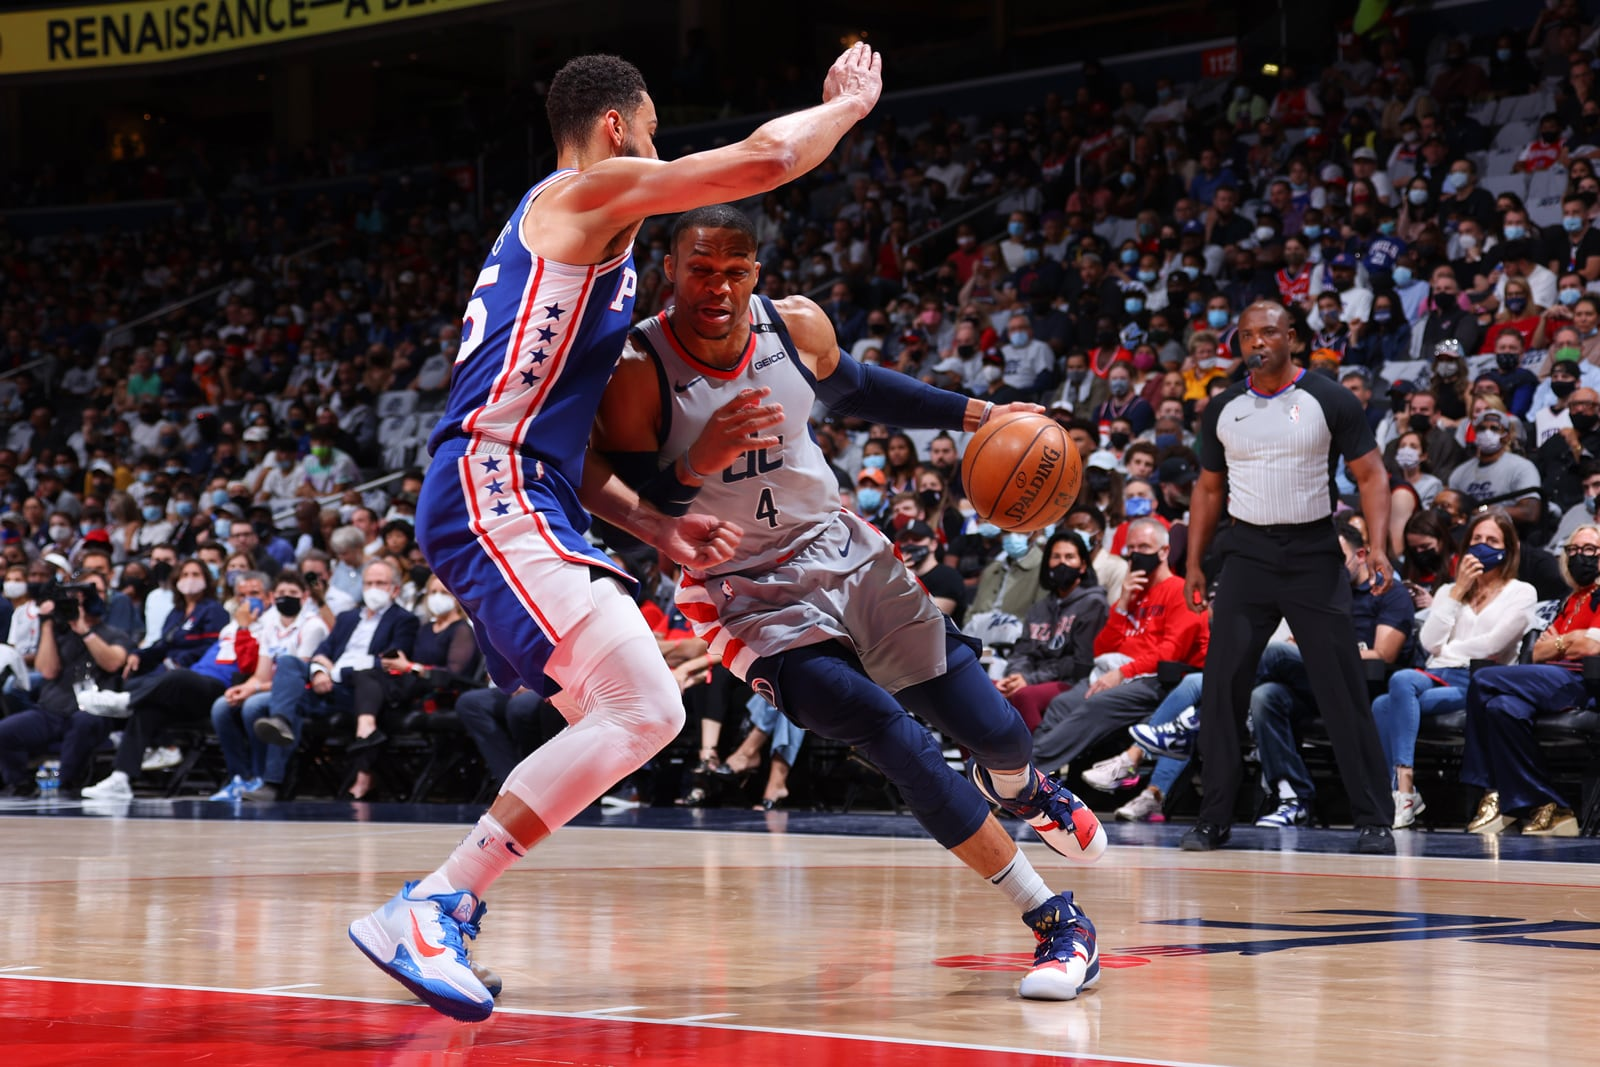 Russell Westbrook drives against the 76ers